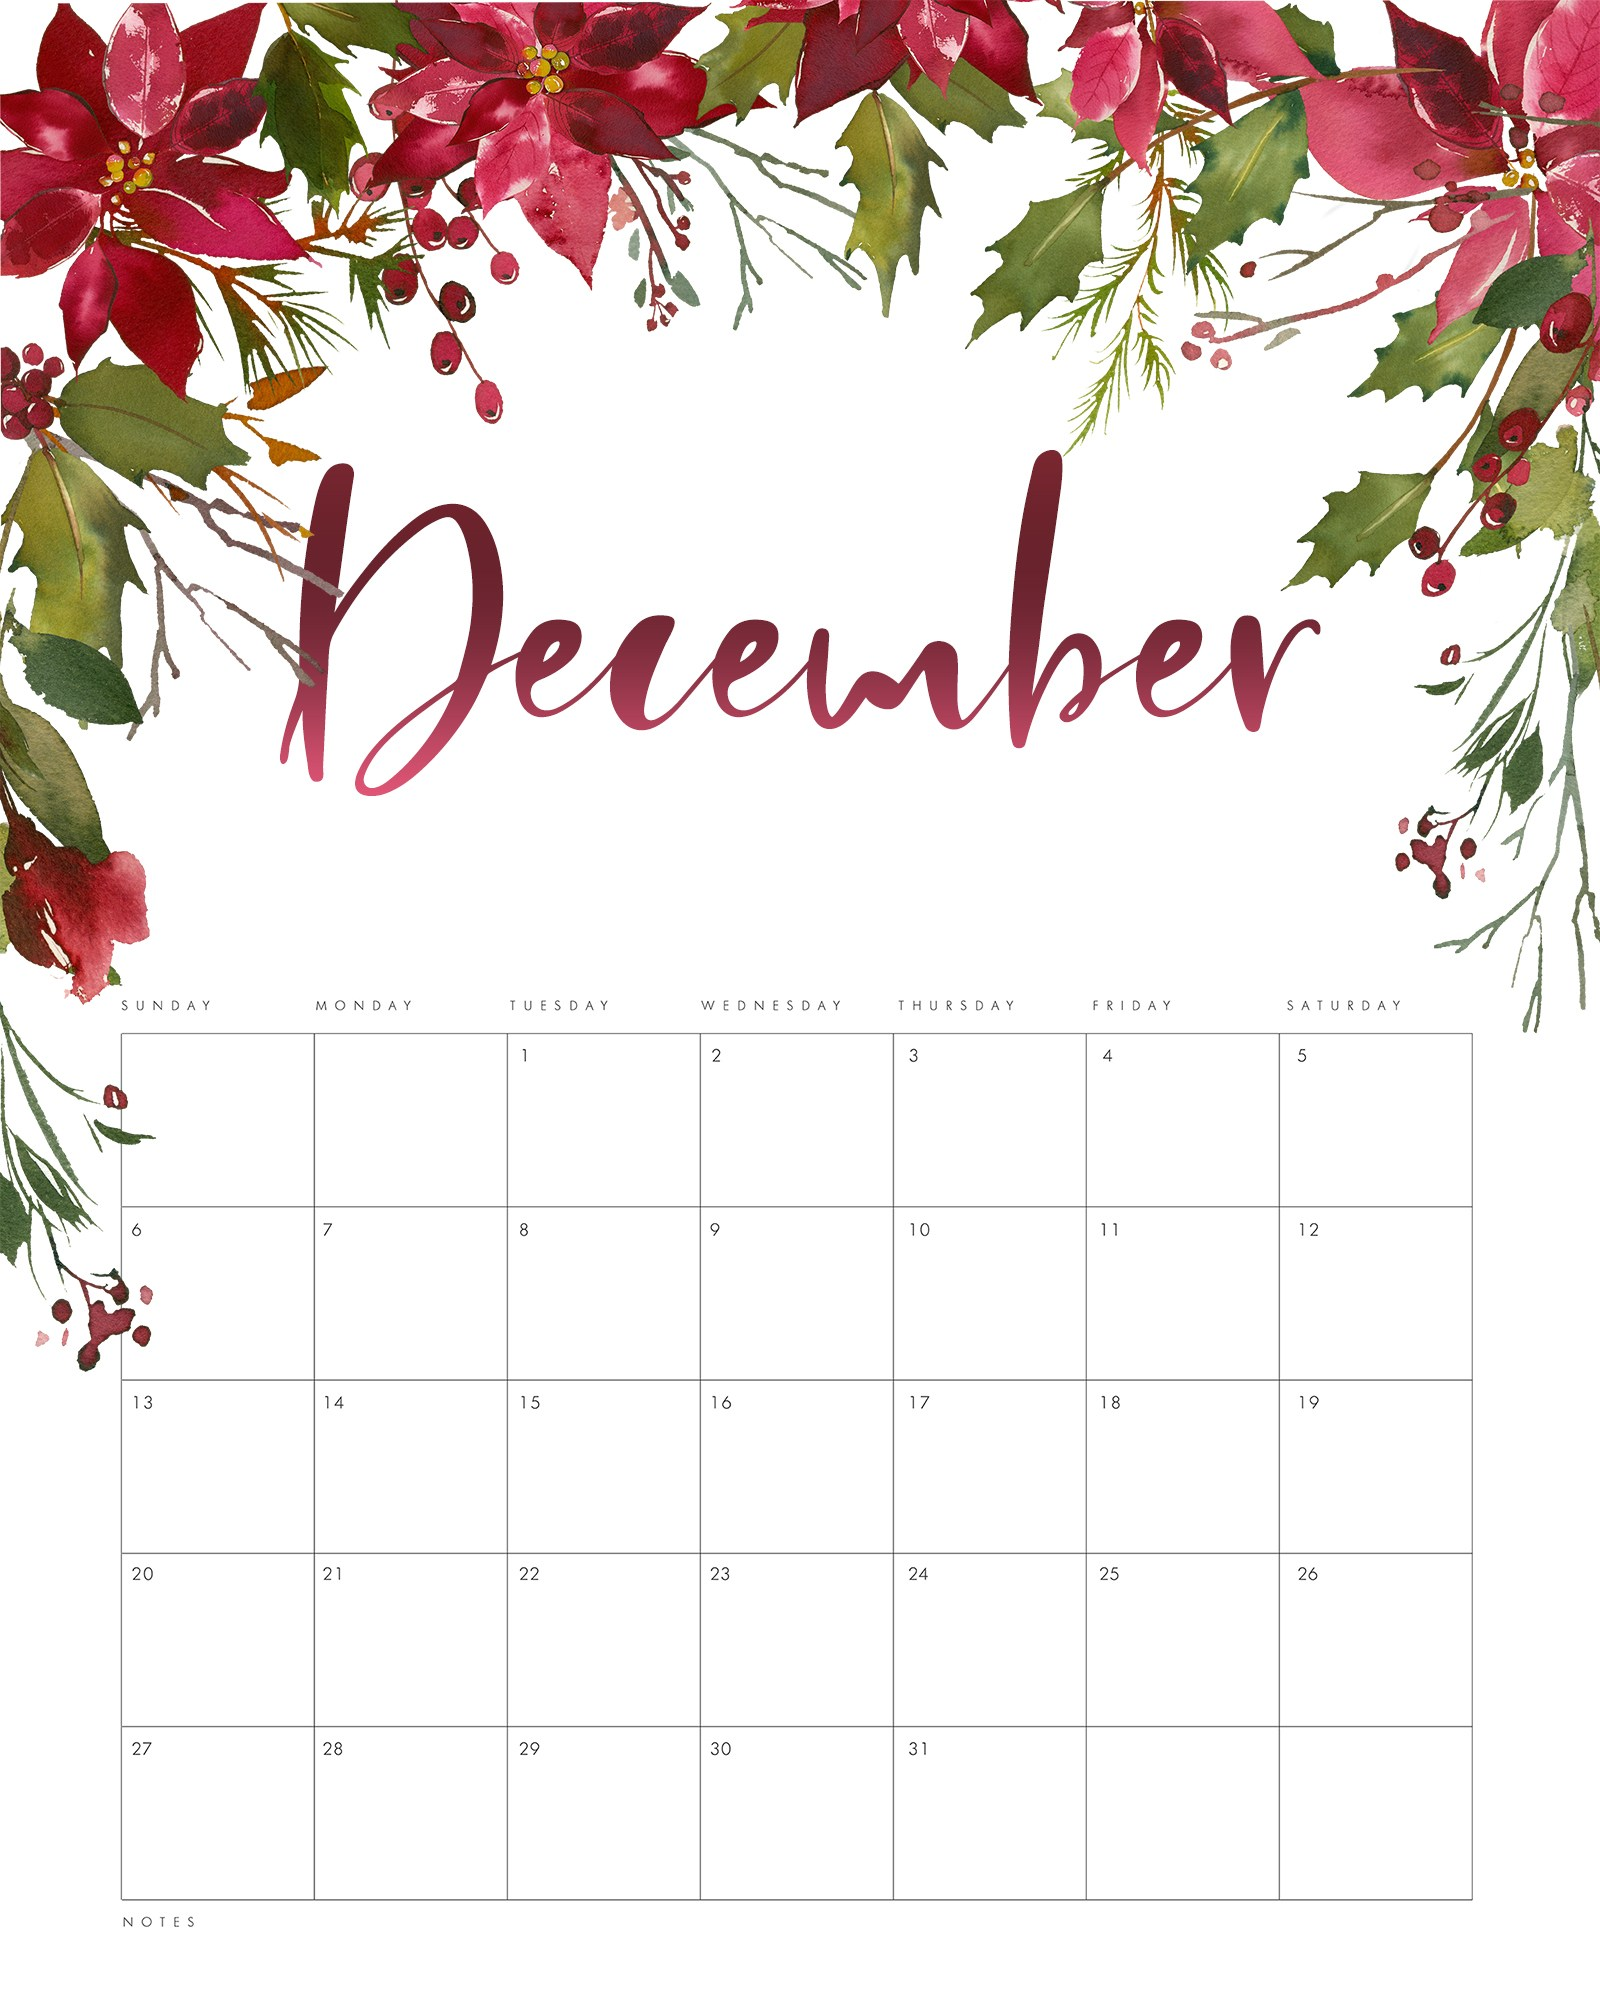 2020 Floral Calendar Printable that you will love